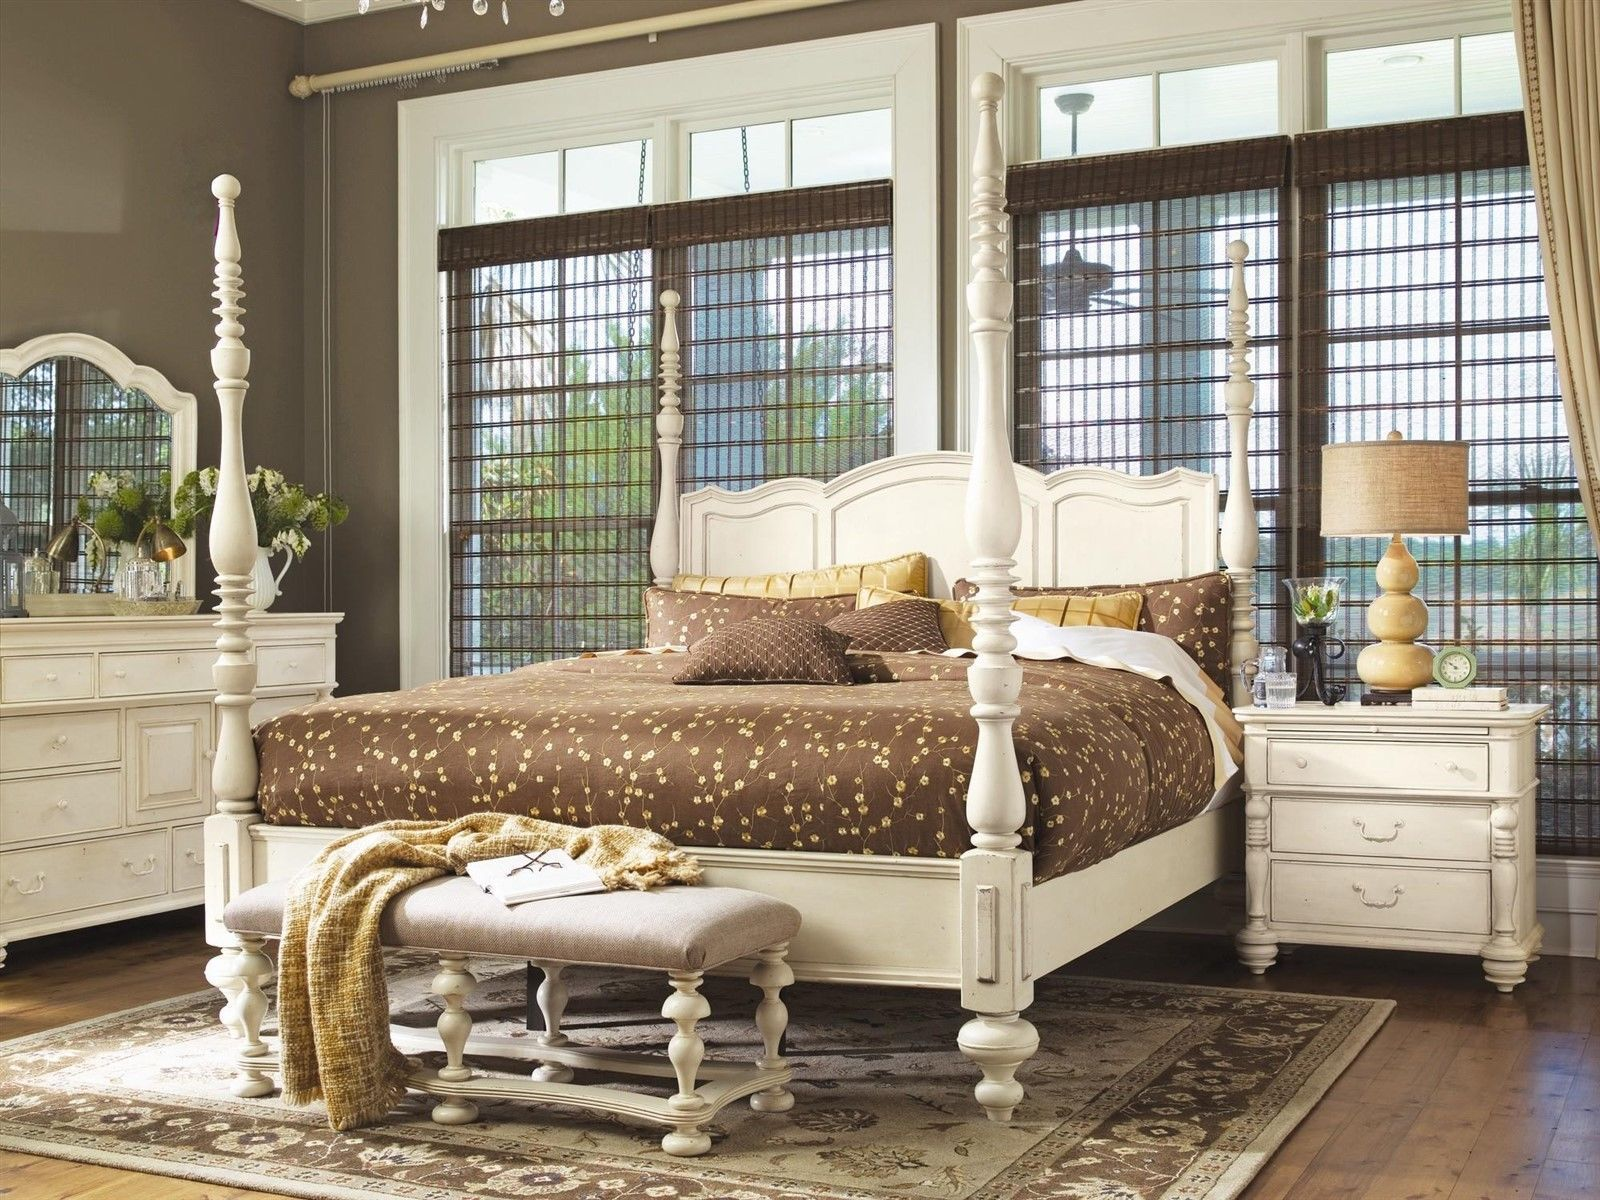 This stylish white four poster bed features a French